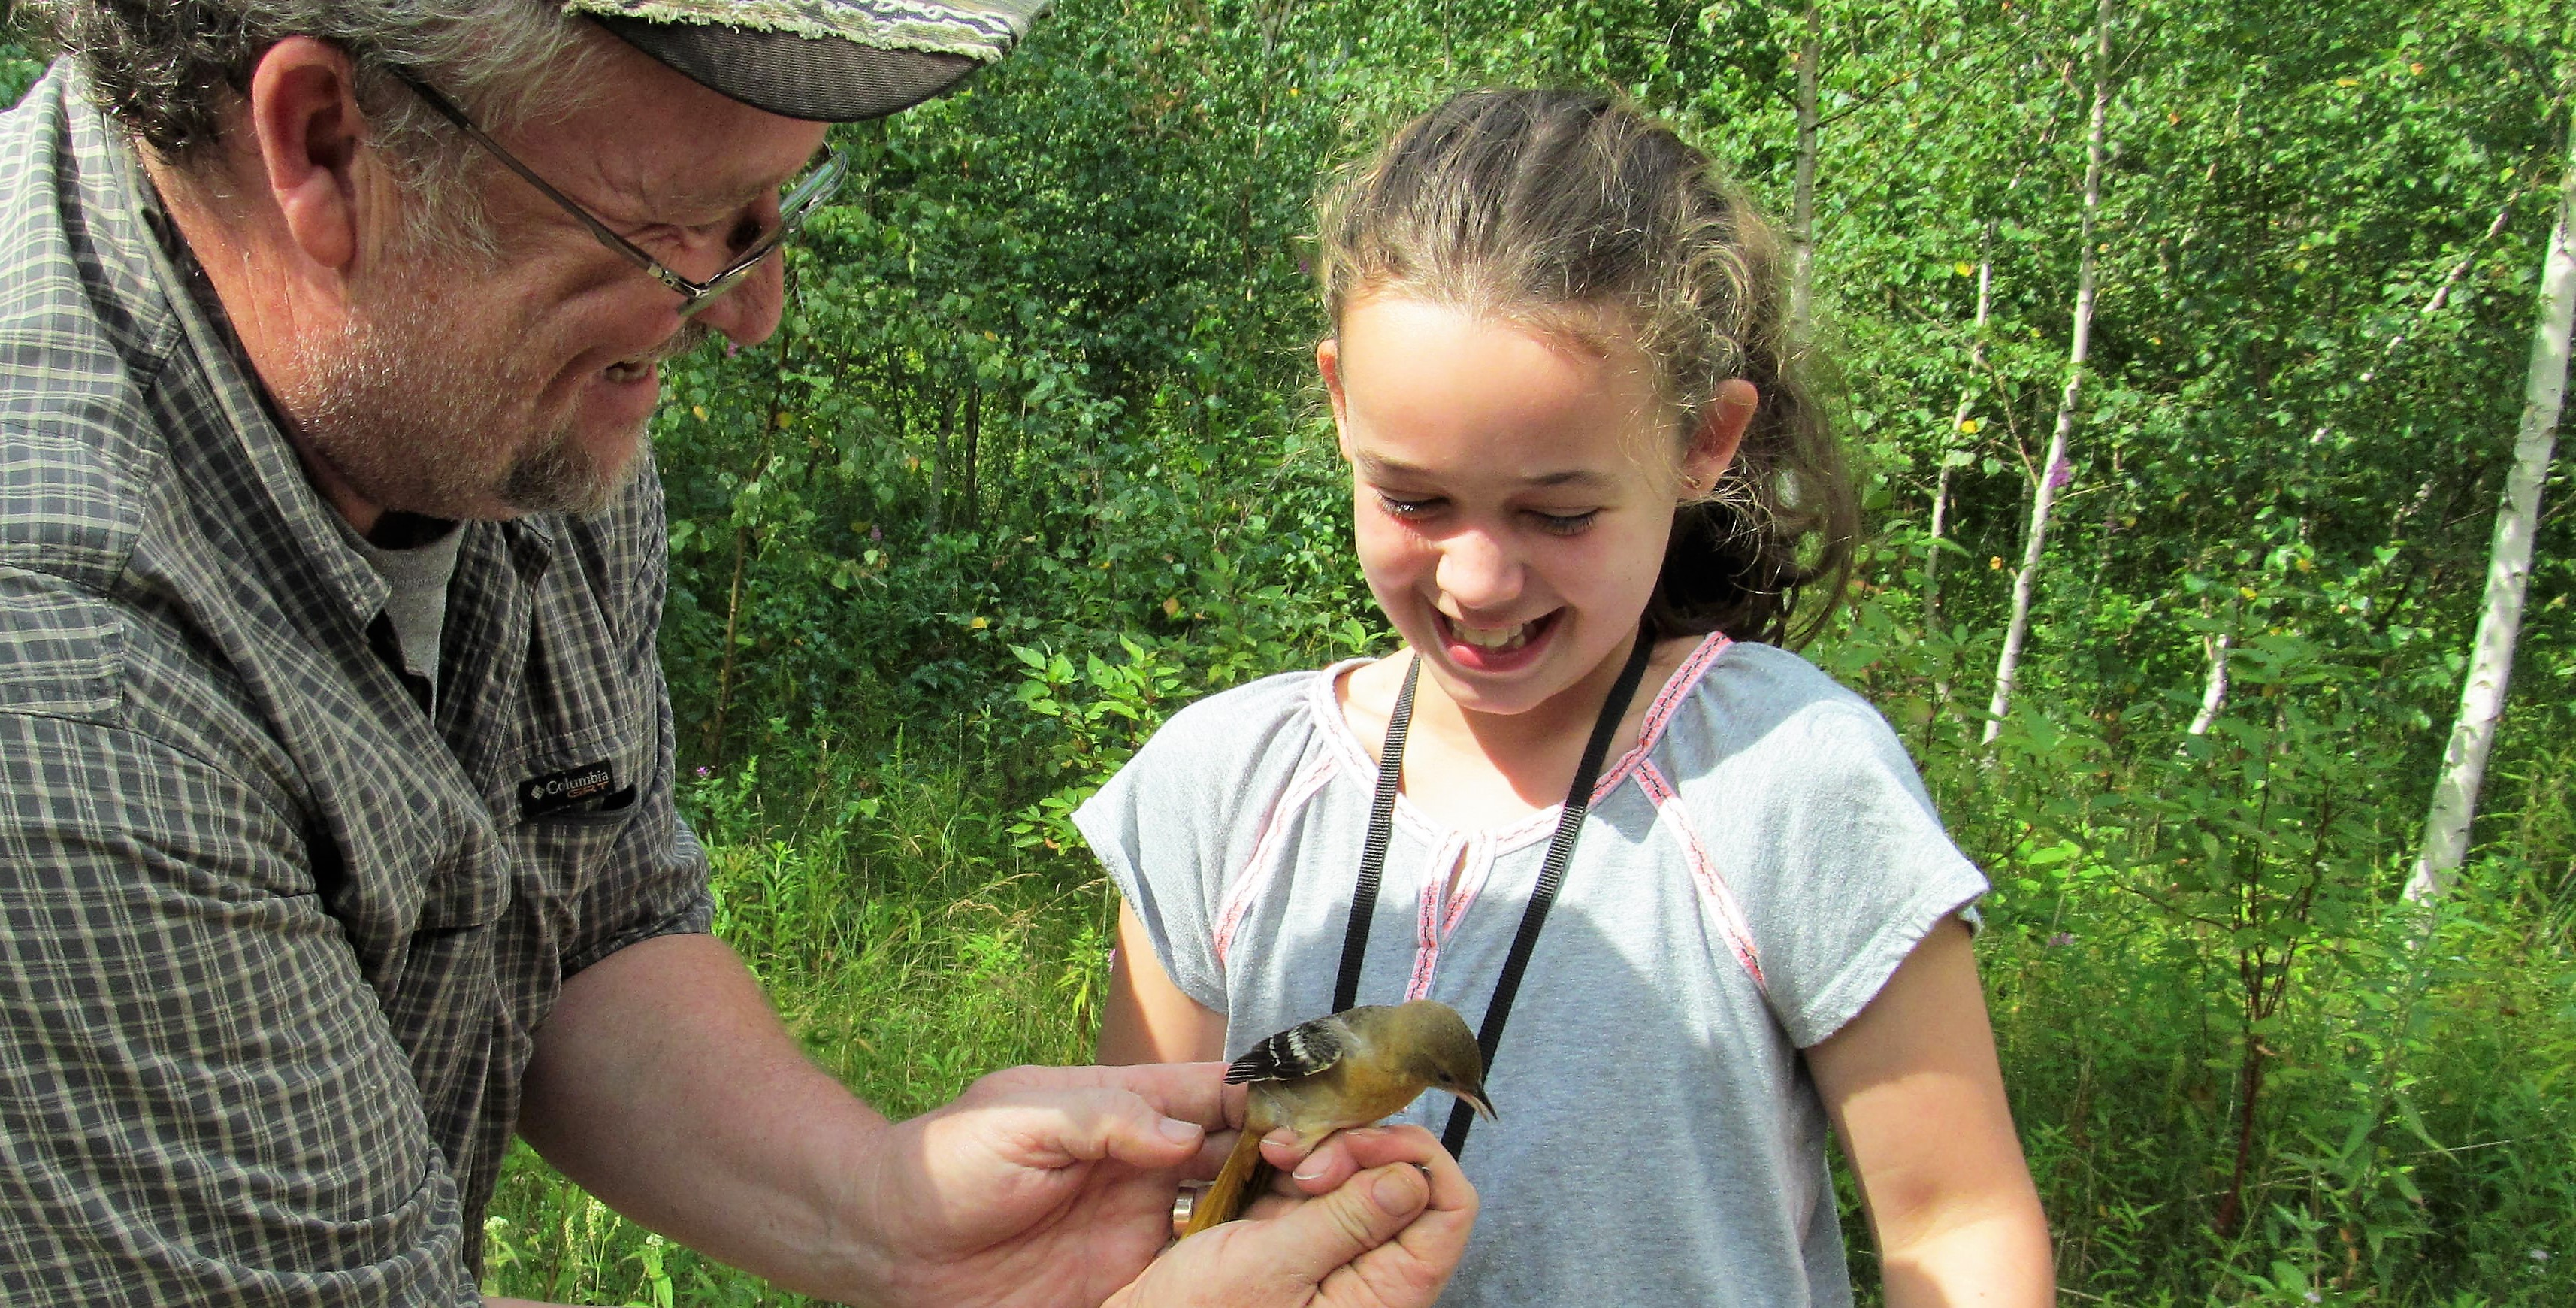 Young birder seeing a bird up close